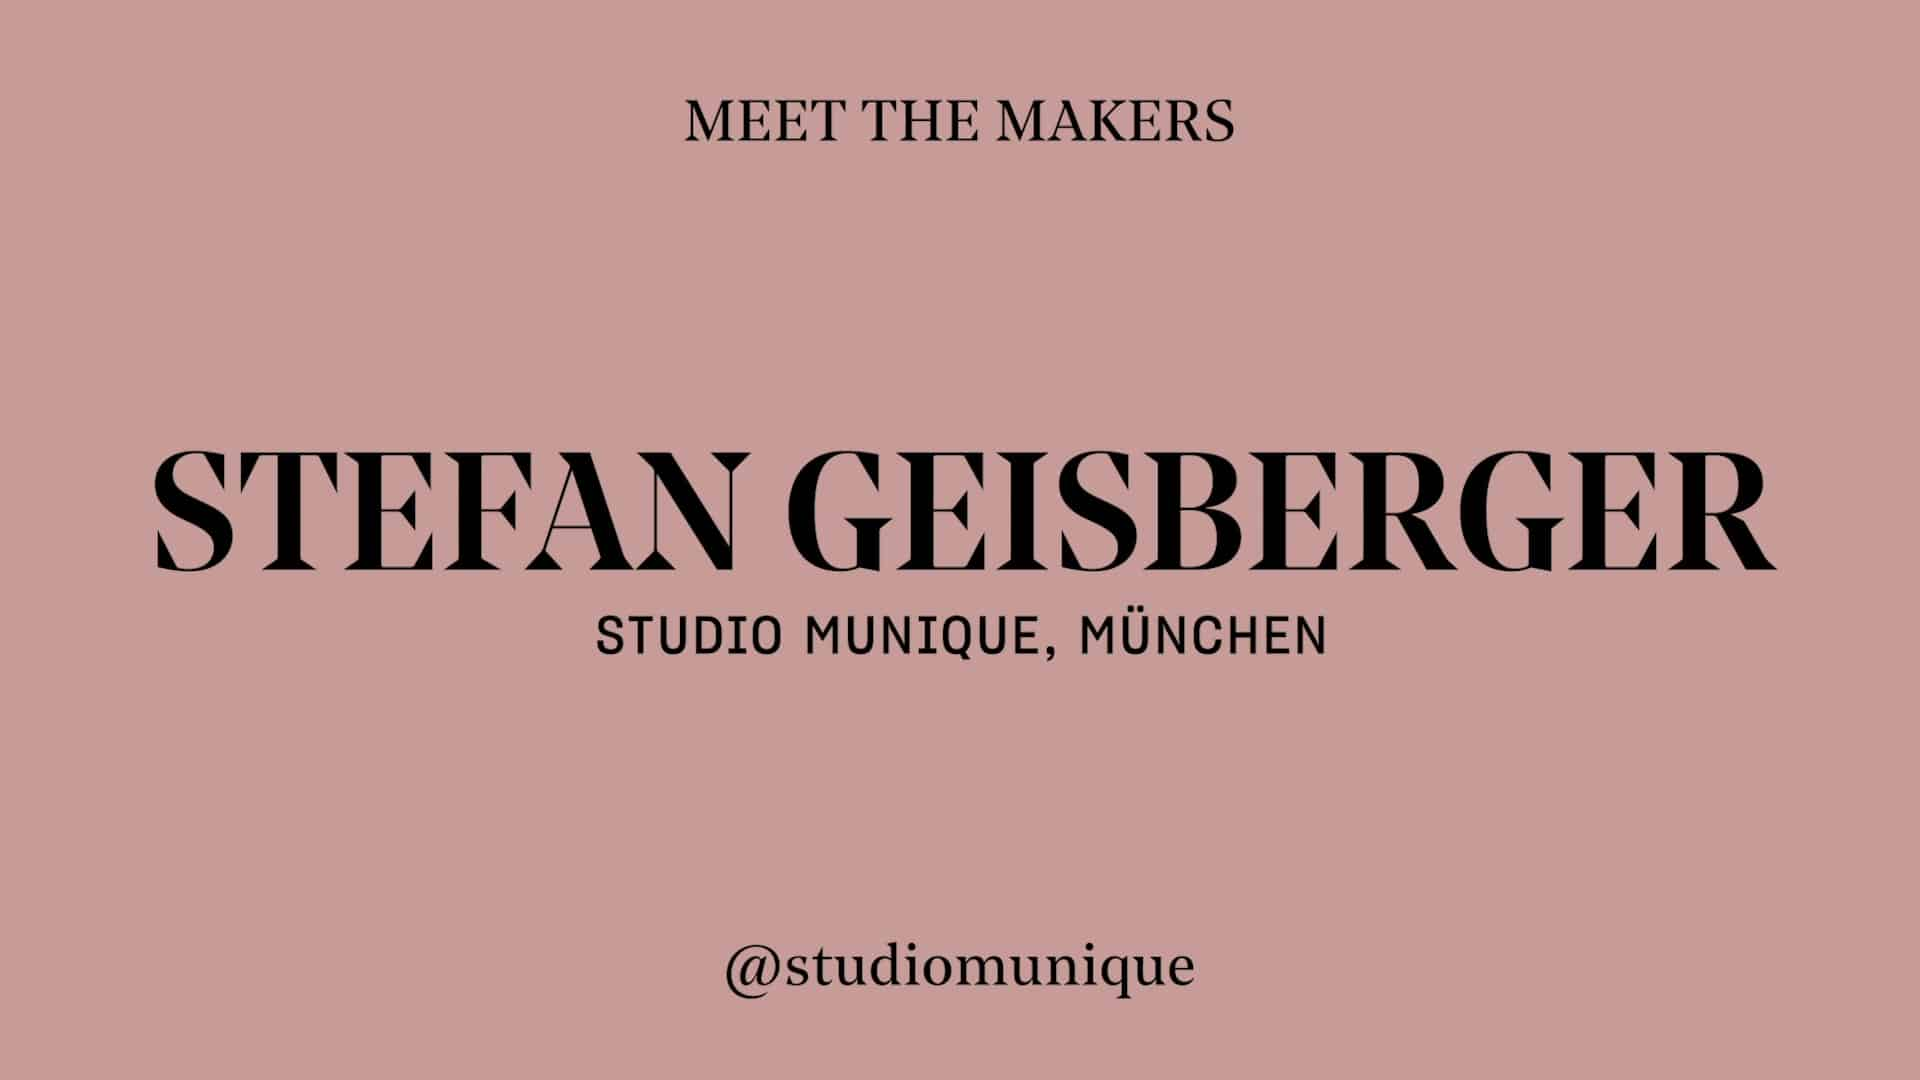 Stefan Geisberger - Studio Munique